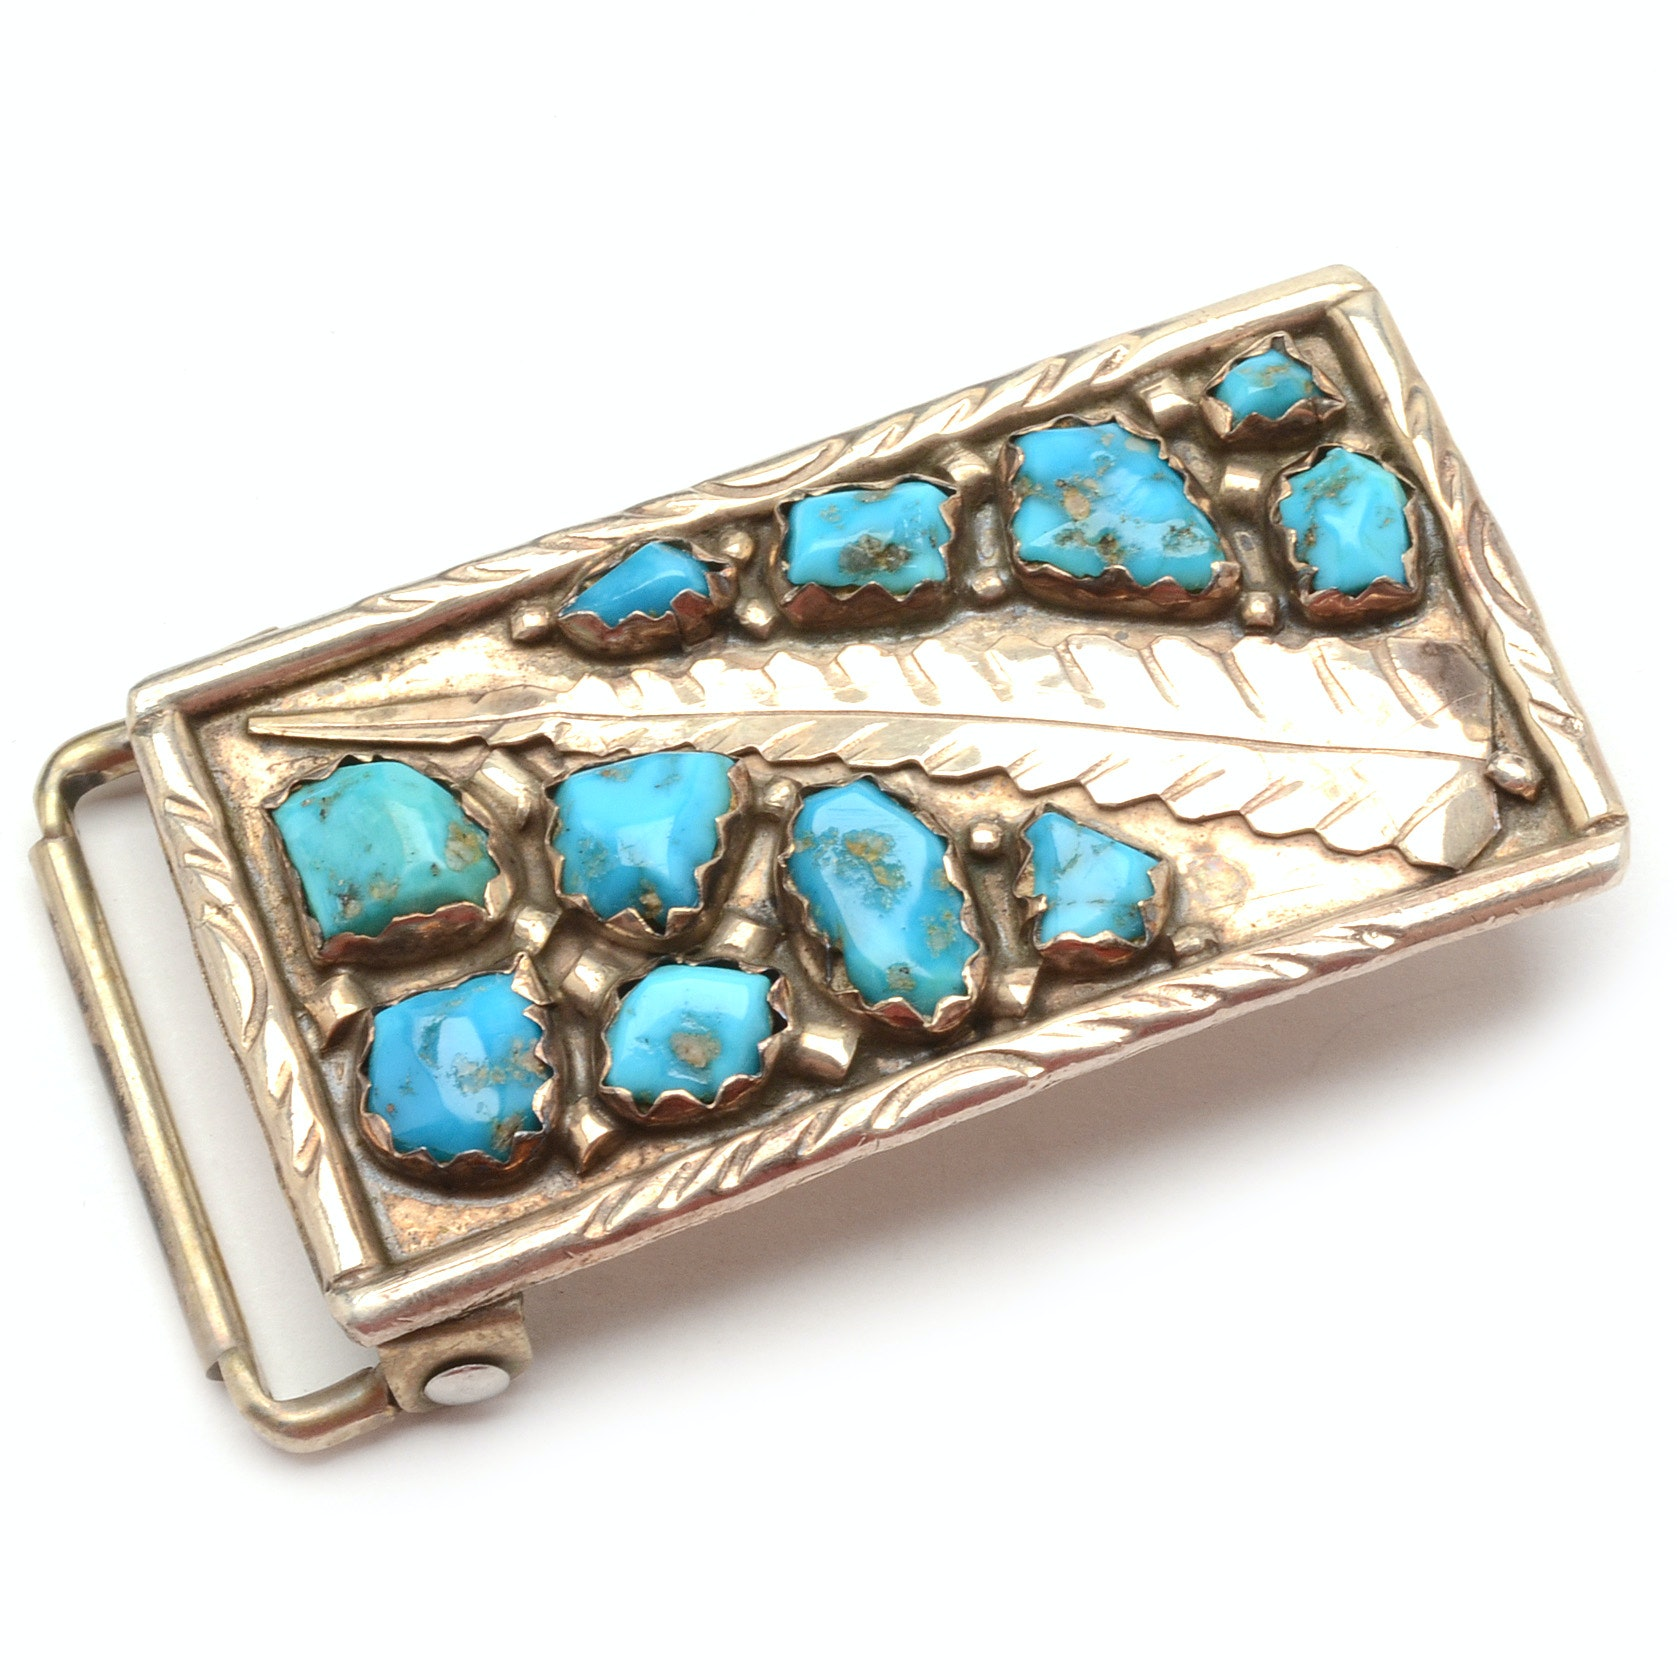 Vintage Wayne Cheama Zuni Sterling Silver Turquoise Buckle